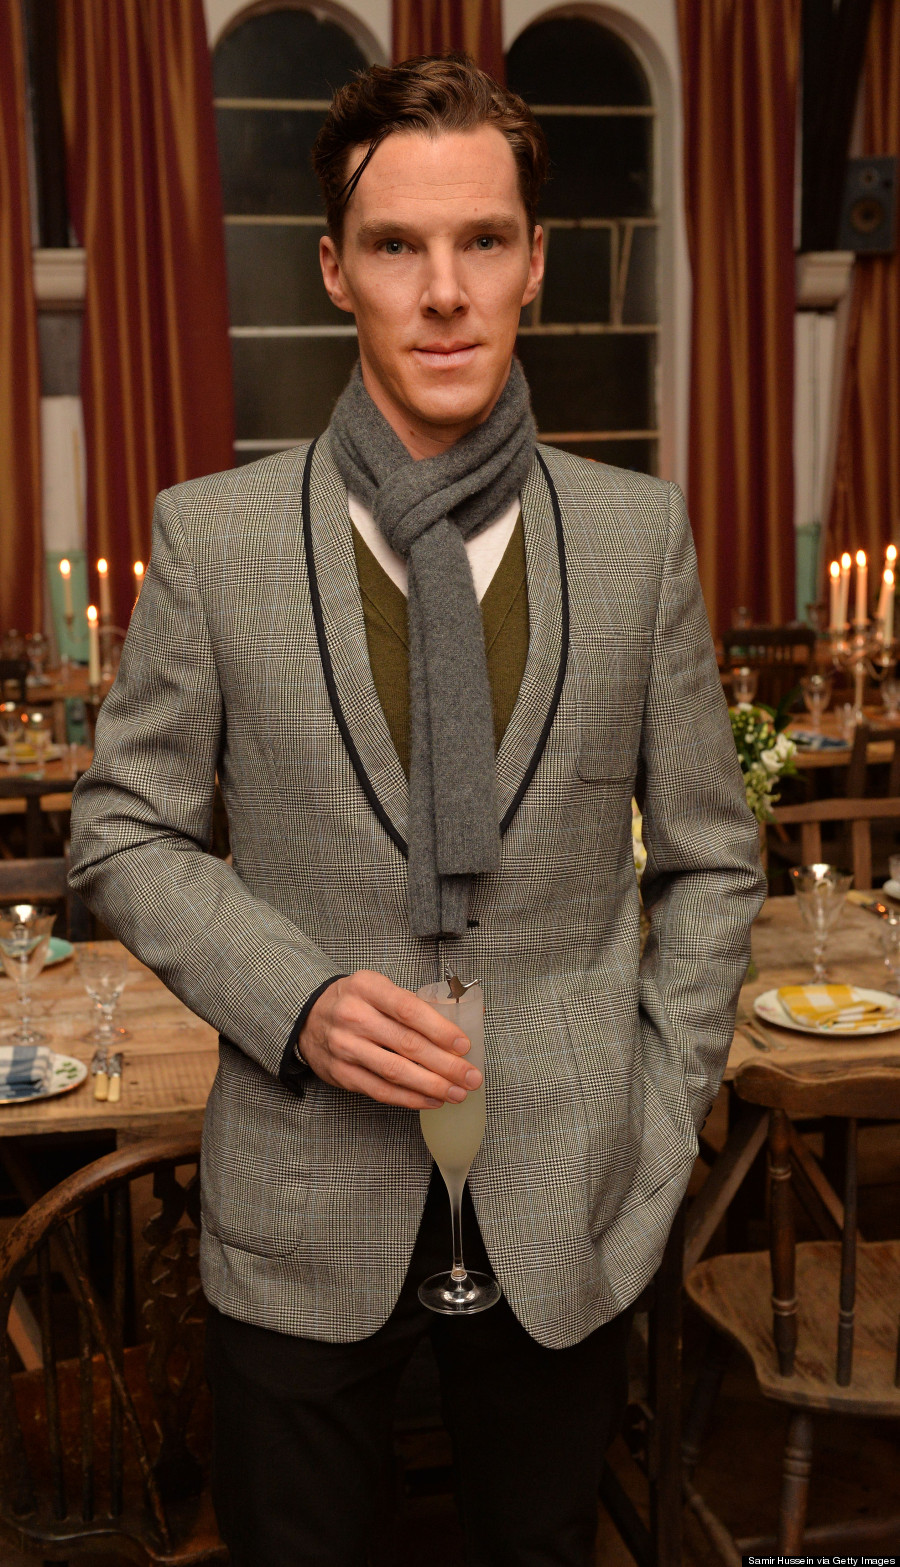 Benedict Cumberbatch Channels Sherlock In Dandy Outfit At